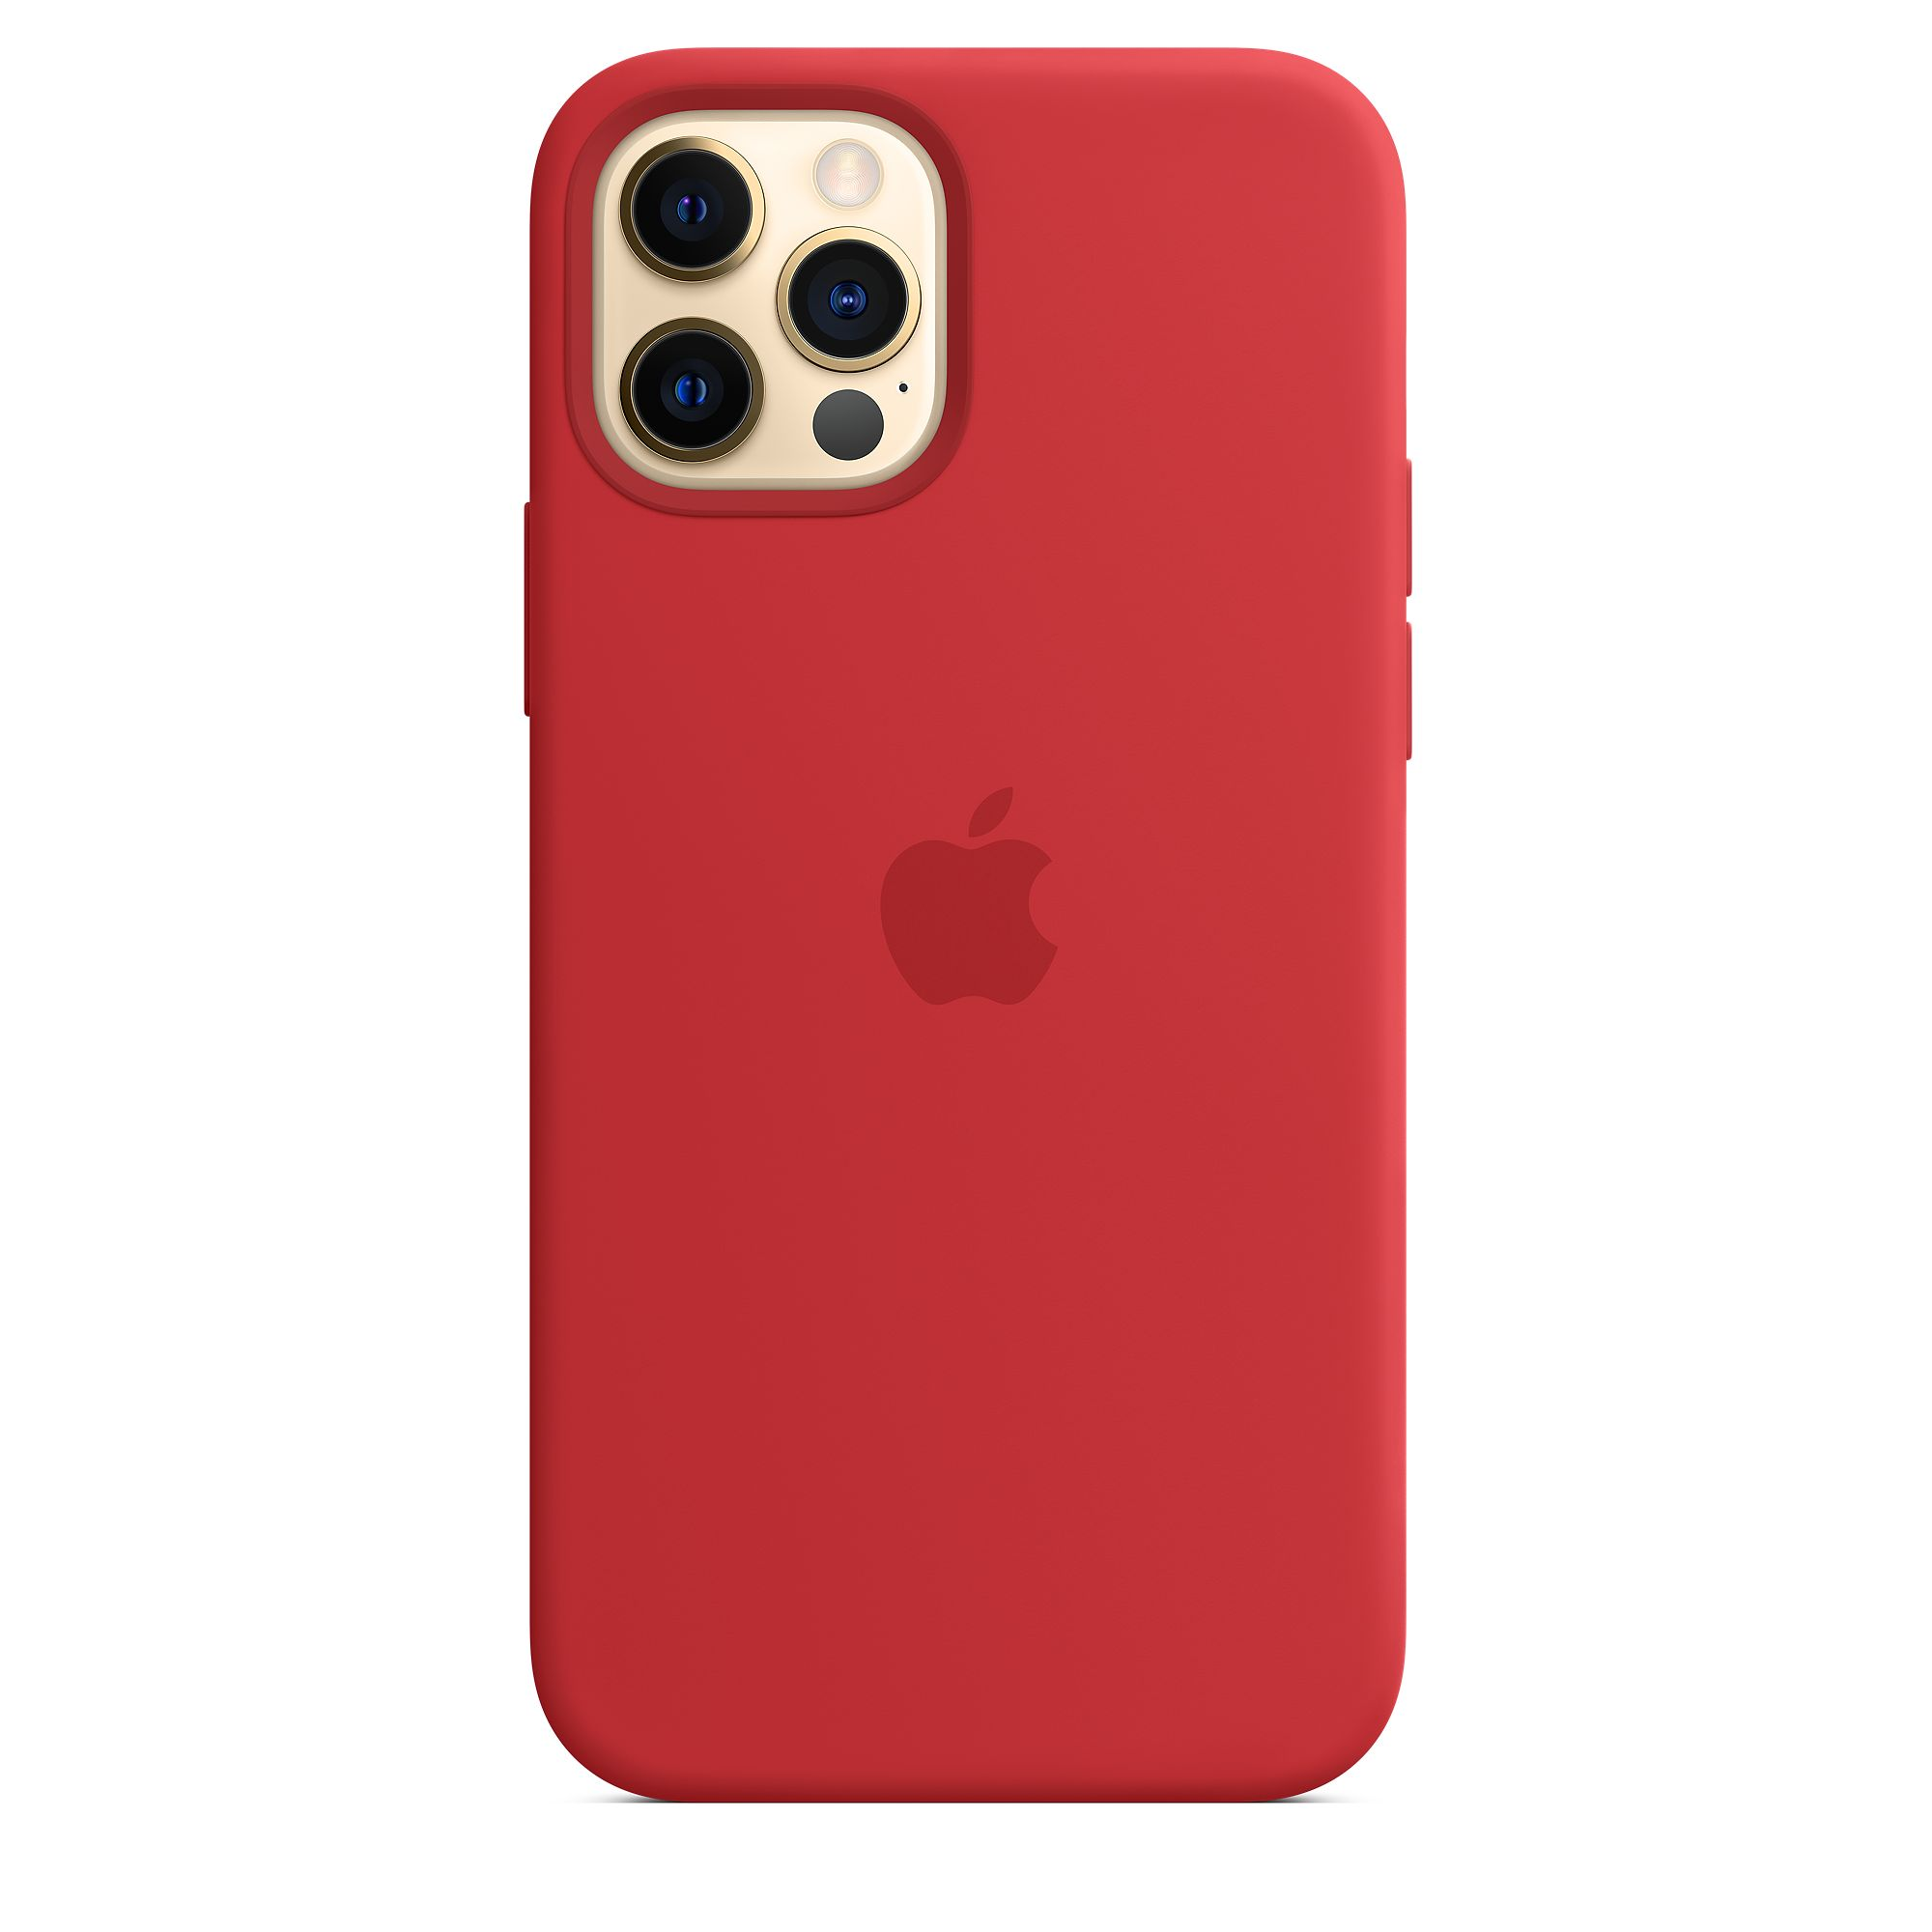 Silicon Case for iPhone 12 Pro Max (Red)